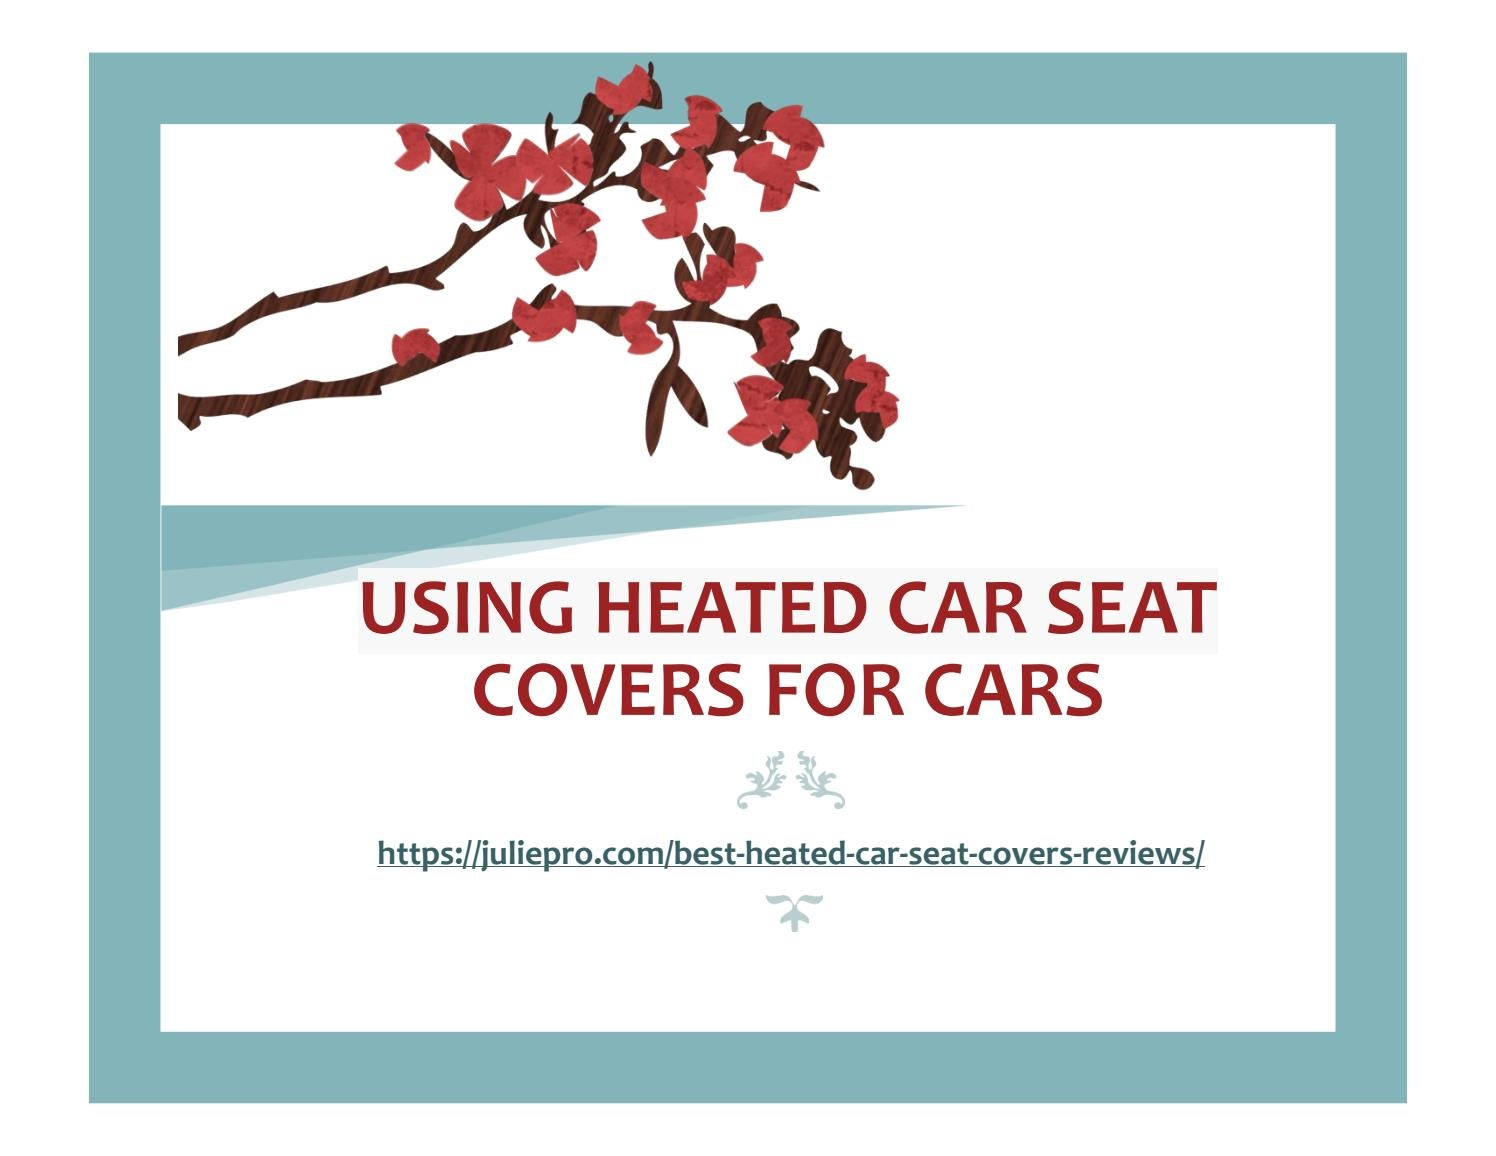 Using The Best Heated Car Seat Covers For Cars And Office Chairs By JuliePro